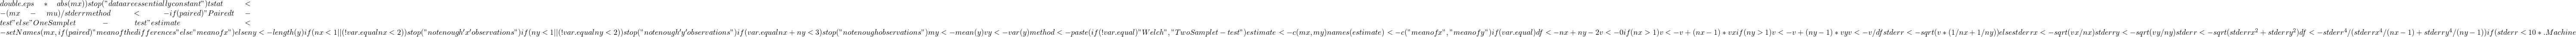 """double.eps * abs(mx))              stop(""""data are essentially constant"""")         tstat <- (mx - mu)/stderr         method <- if (paired)              """"Paired t-test""""         else """"One Sample t-test""""         estimate <- setNames(mx, if (paired)              """"mean of the differences""""         else """"mean of x"""")     }     else {         ny <- length(y)         if (nx < 1 